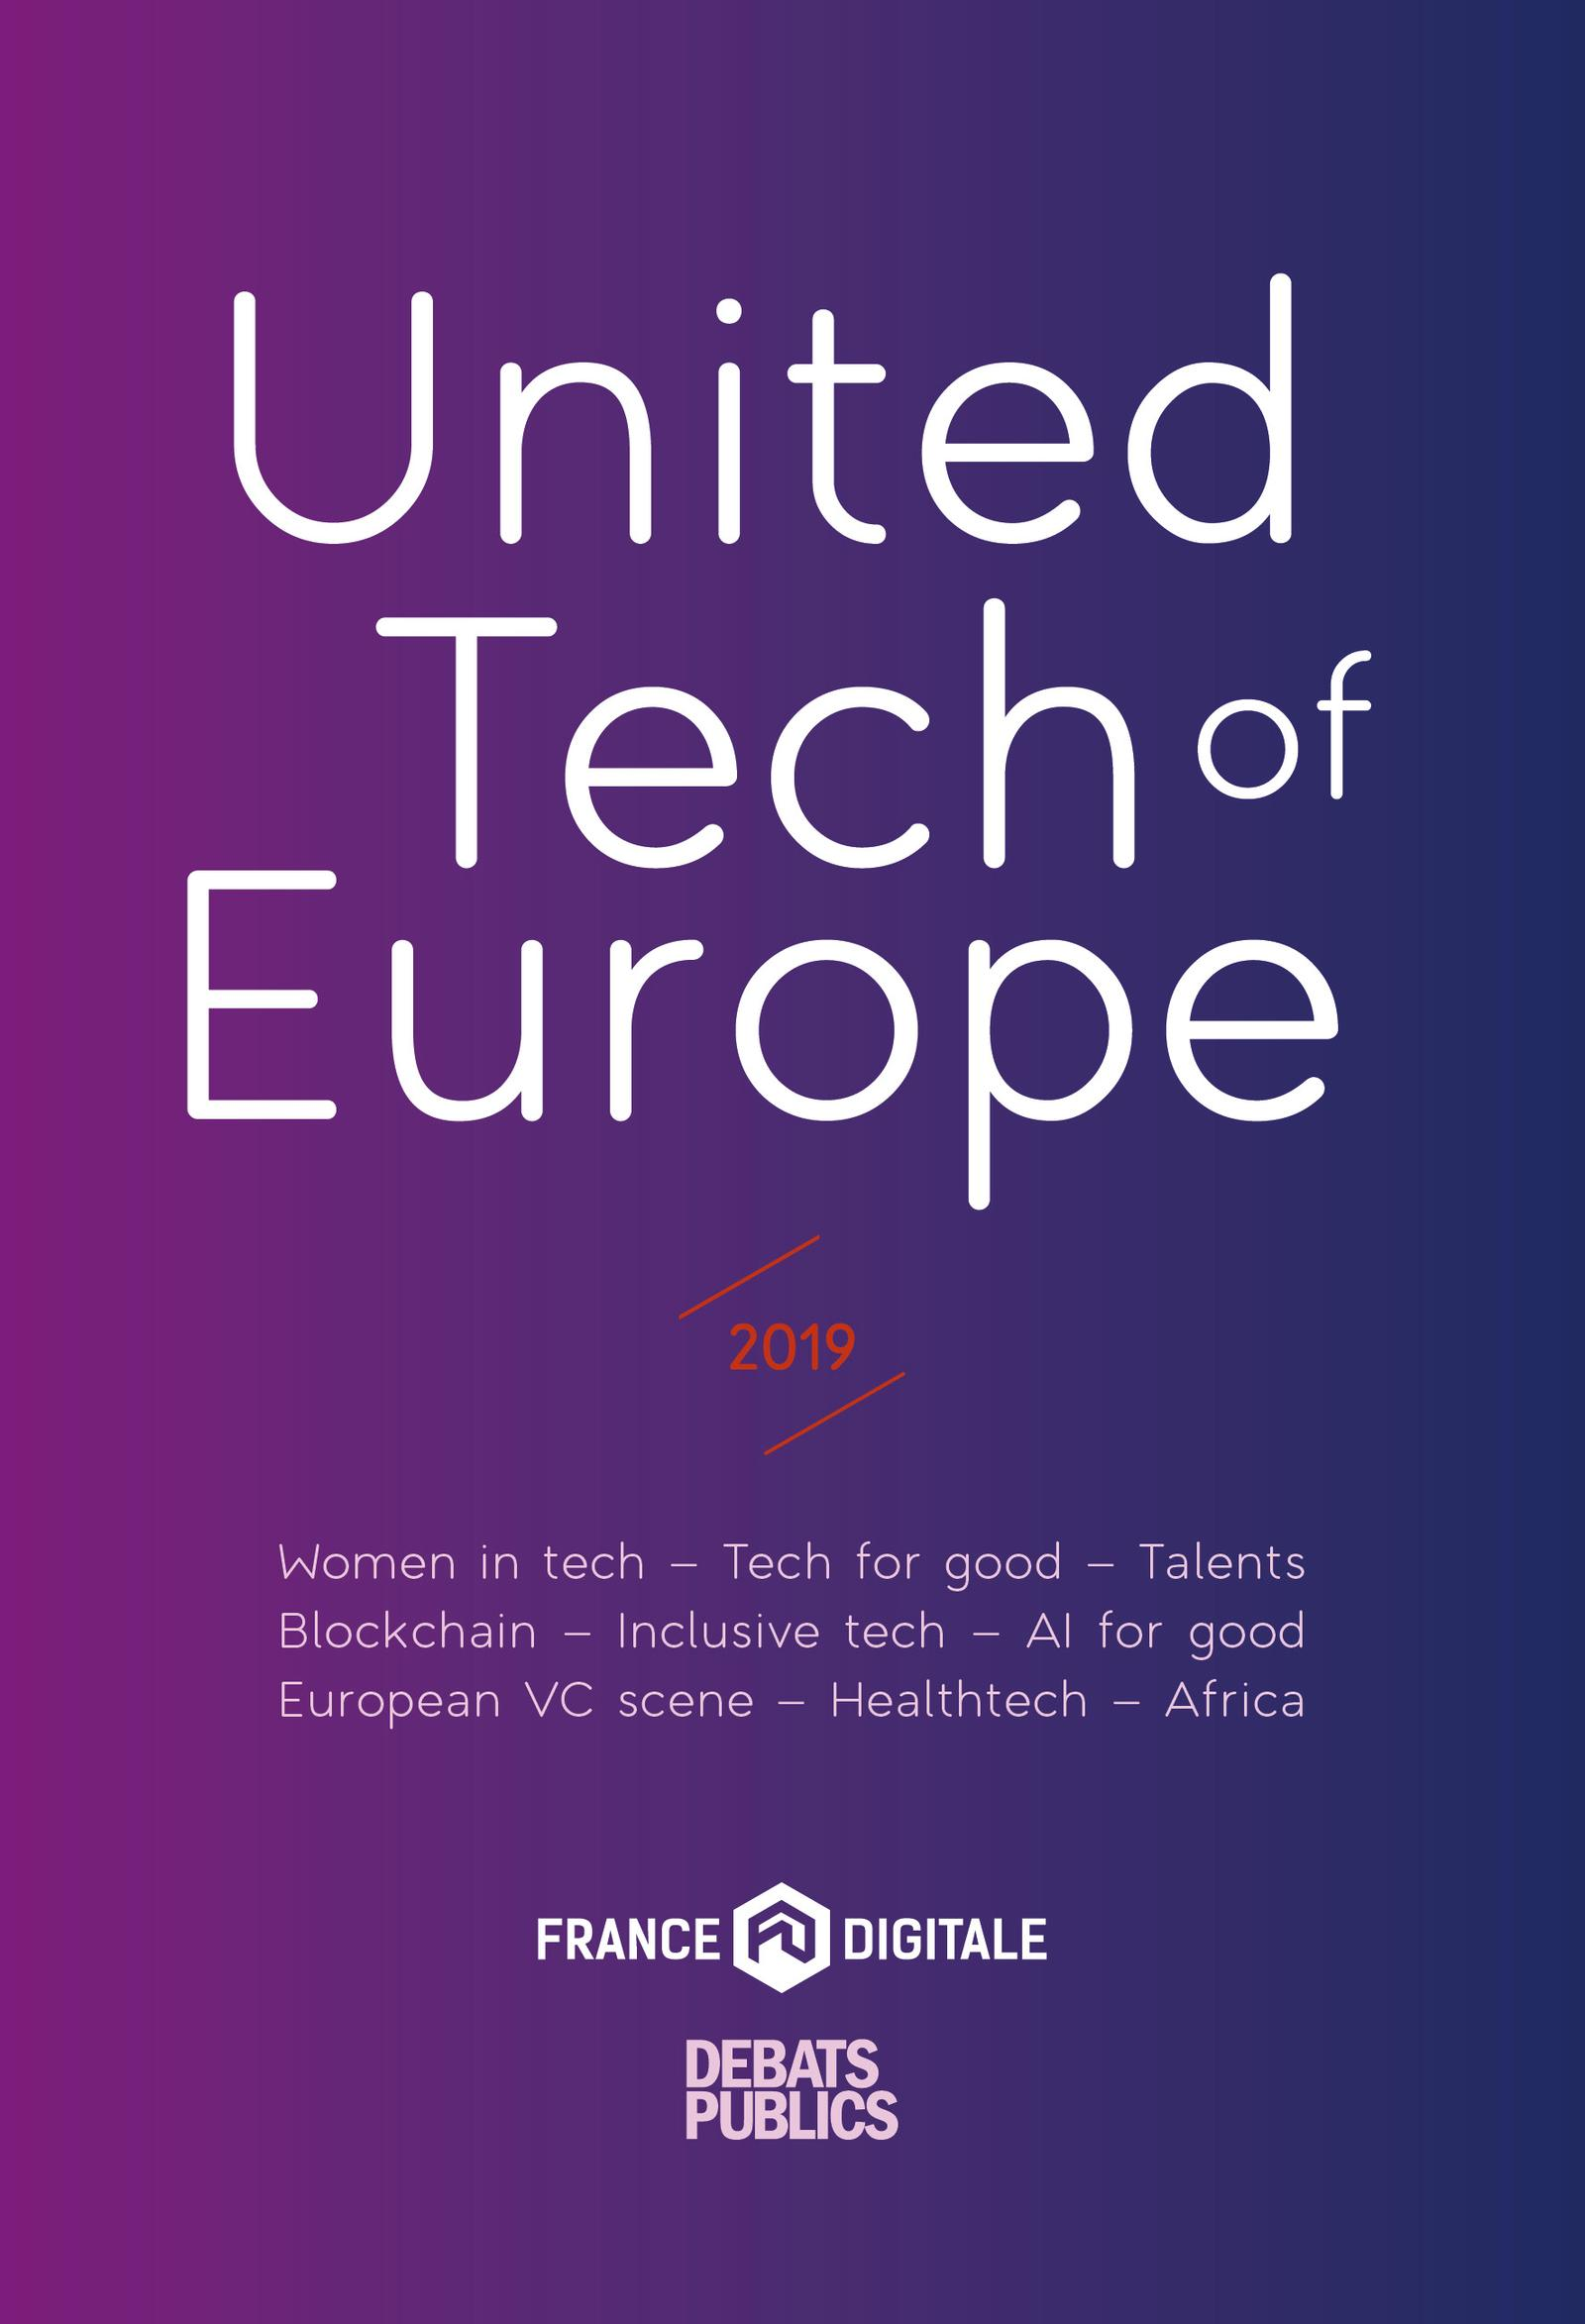 United Tech of Europe